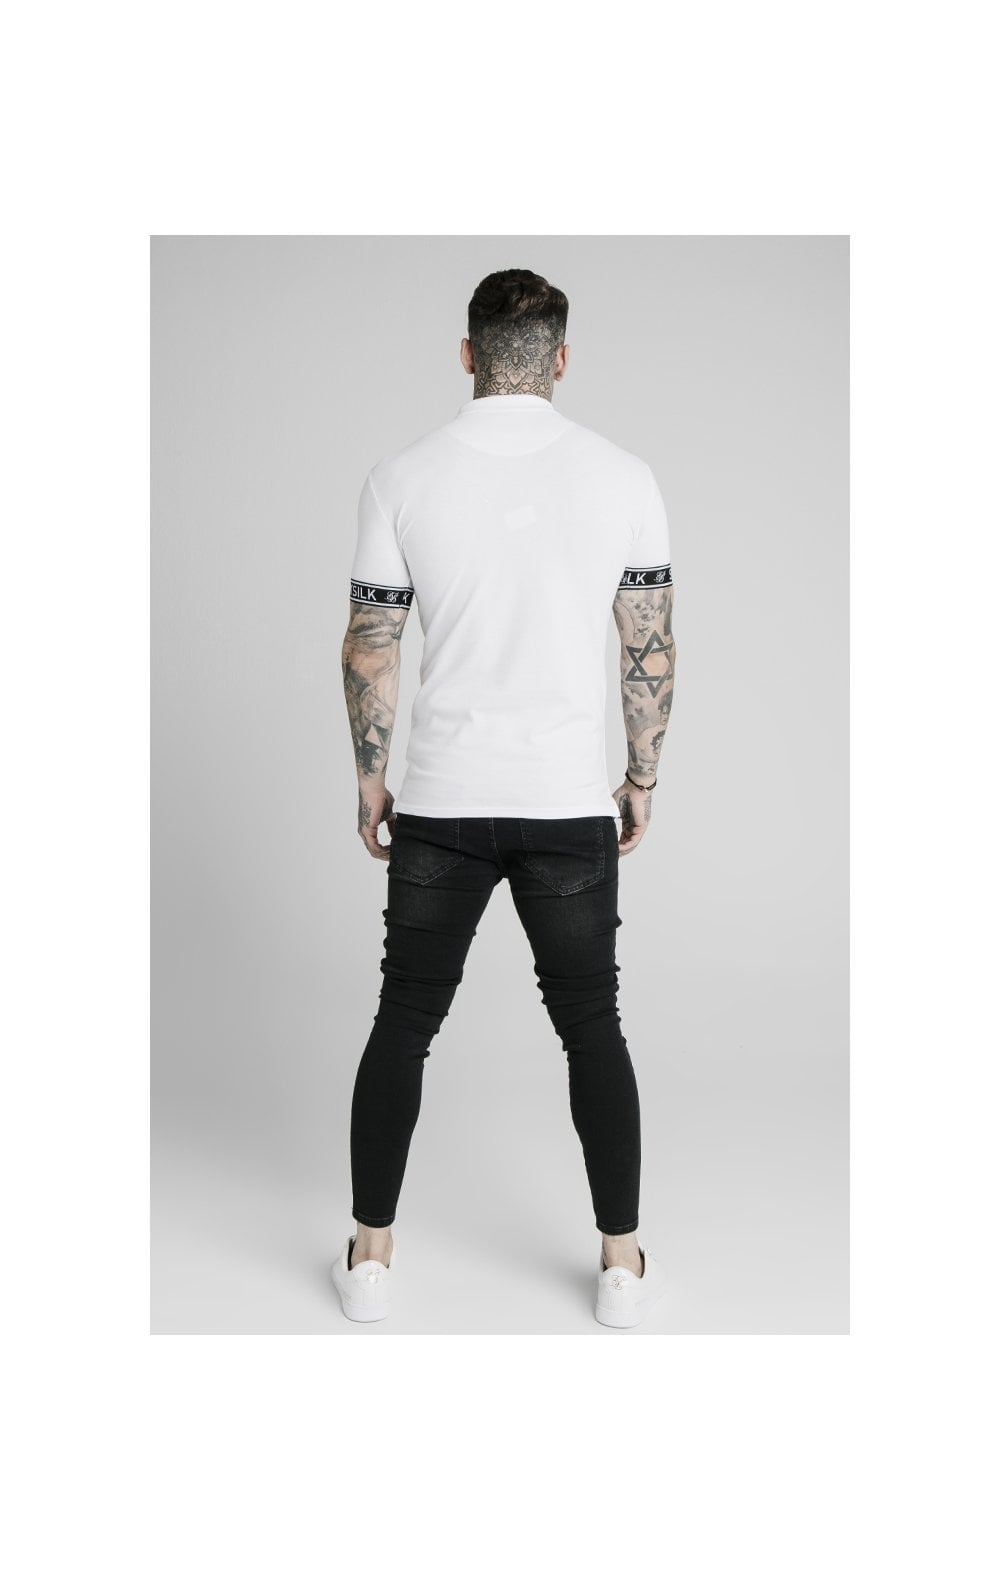 SikSilk S/S Tech Polo Tee - White (2)